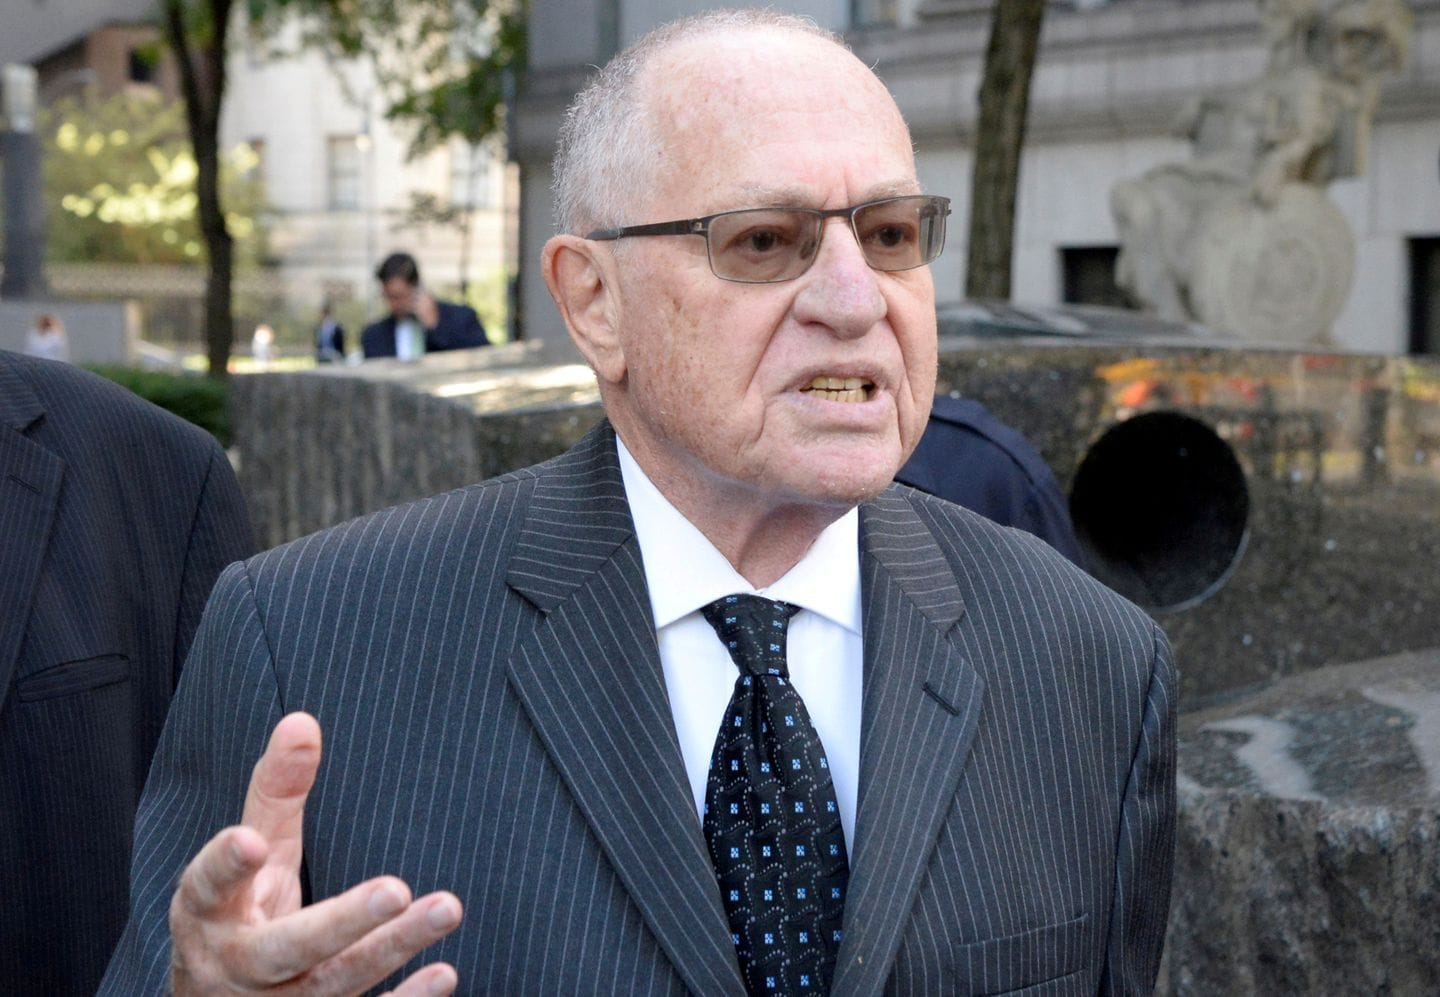 Dershowitz distances himself from White House response to Democrats' impeachment charges